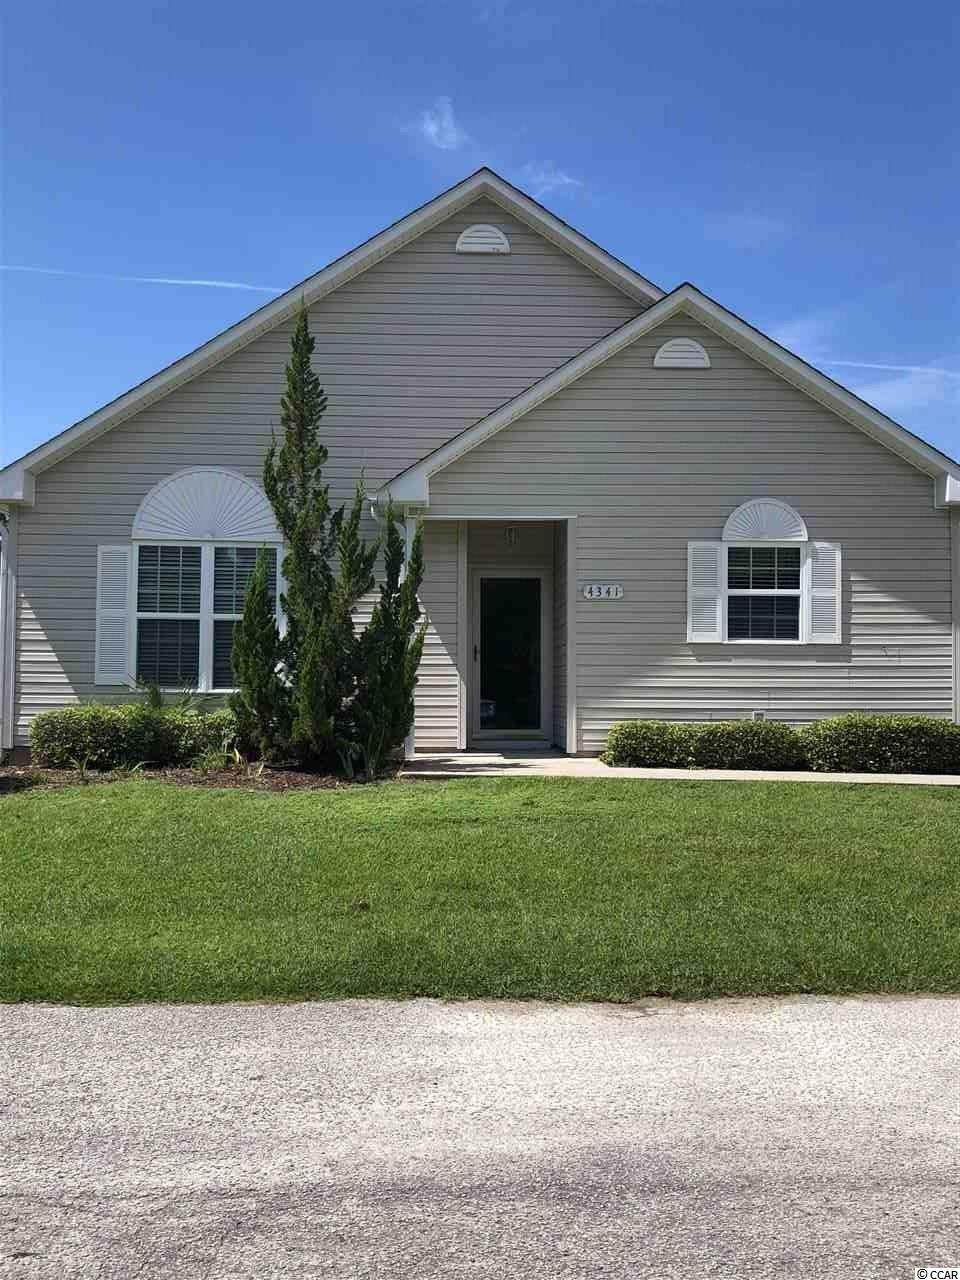 Rivergate is a 55+ designated adult community. Conveniently located to shopping, waterfront dining and medical facilities. Move in ready home features an open floor plan with vaulted ceiling in the living area. Kitchen features lots of cabinet space with dining area. Spacious laundry room with Washer & Dryer. Home has just been painted and professionally cleaned. Come enjoy the peaceful lifestyle and let someone else take care of the lawn while you enjoy making new friends. HOA includes basic cable, trash pickup, pest control, yard maint., community clubhouse and pool.